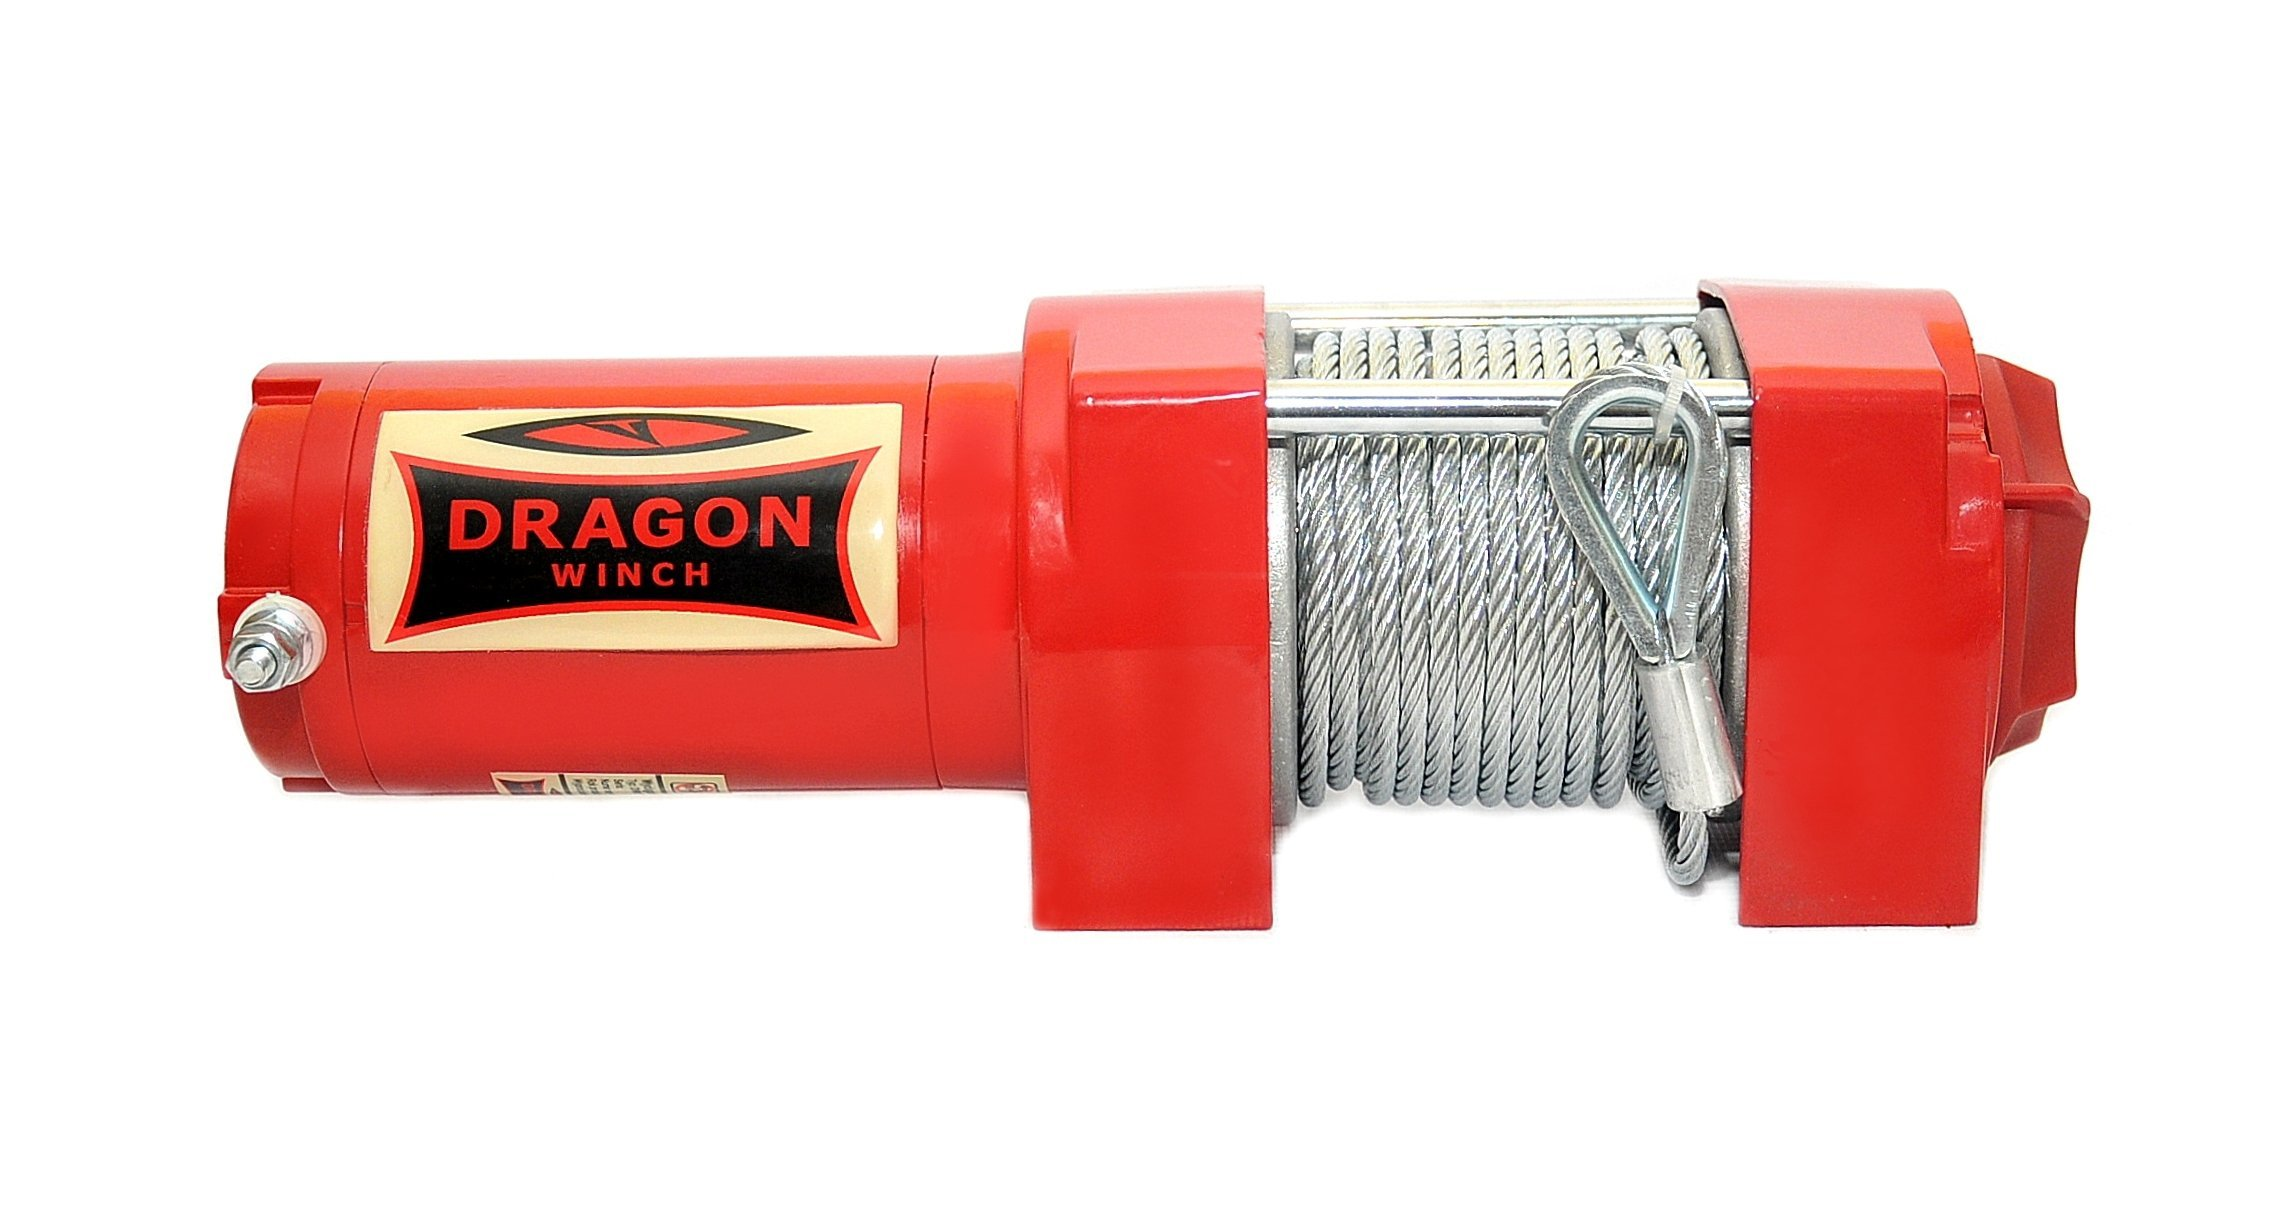 Лебедка Dragon Winch DWM 3500 ST